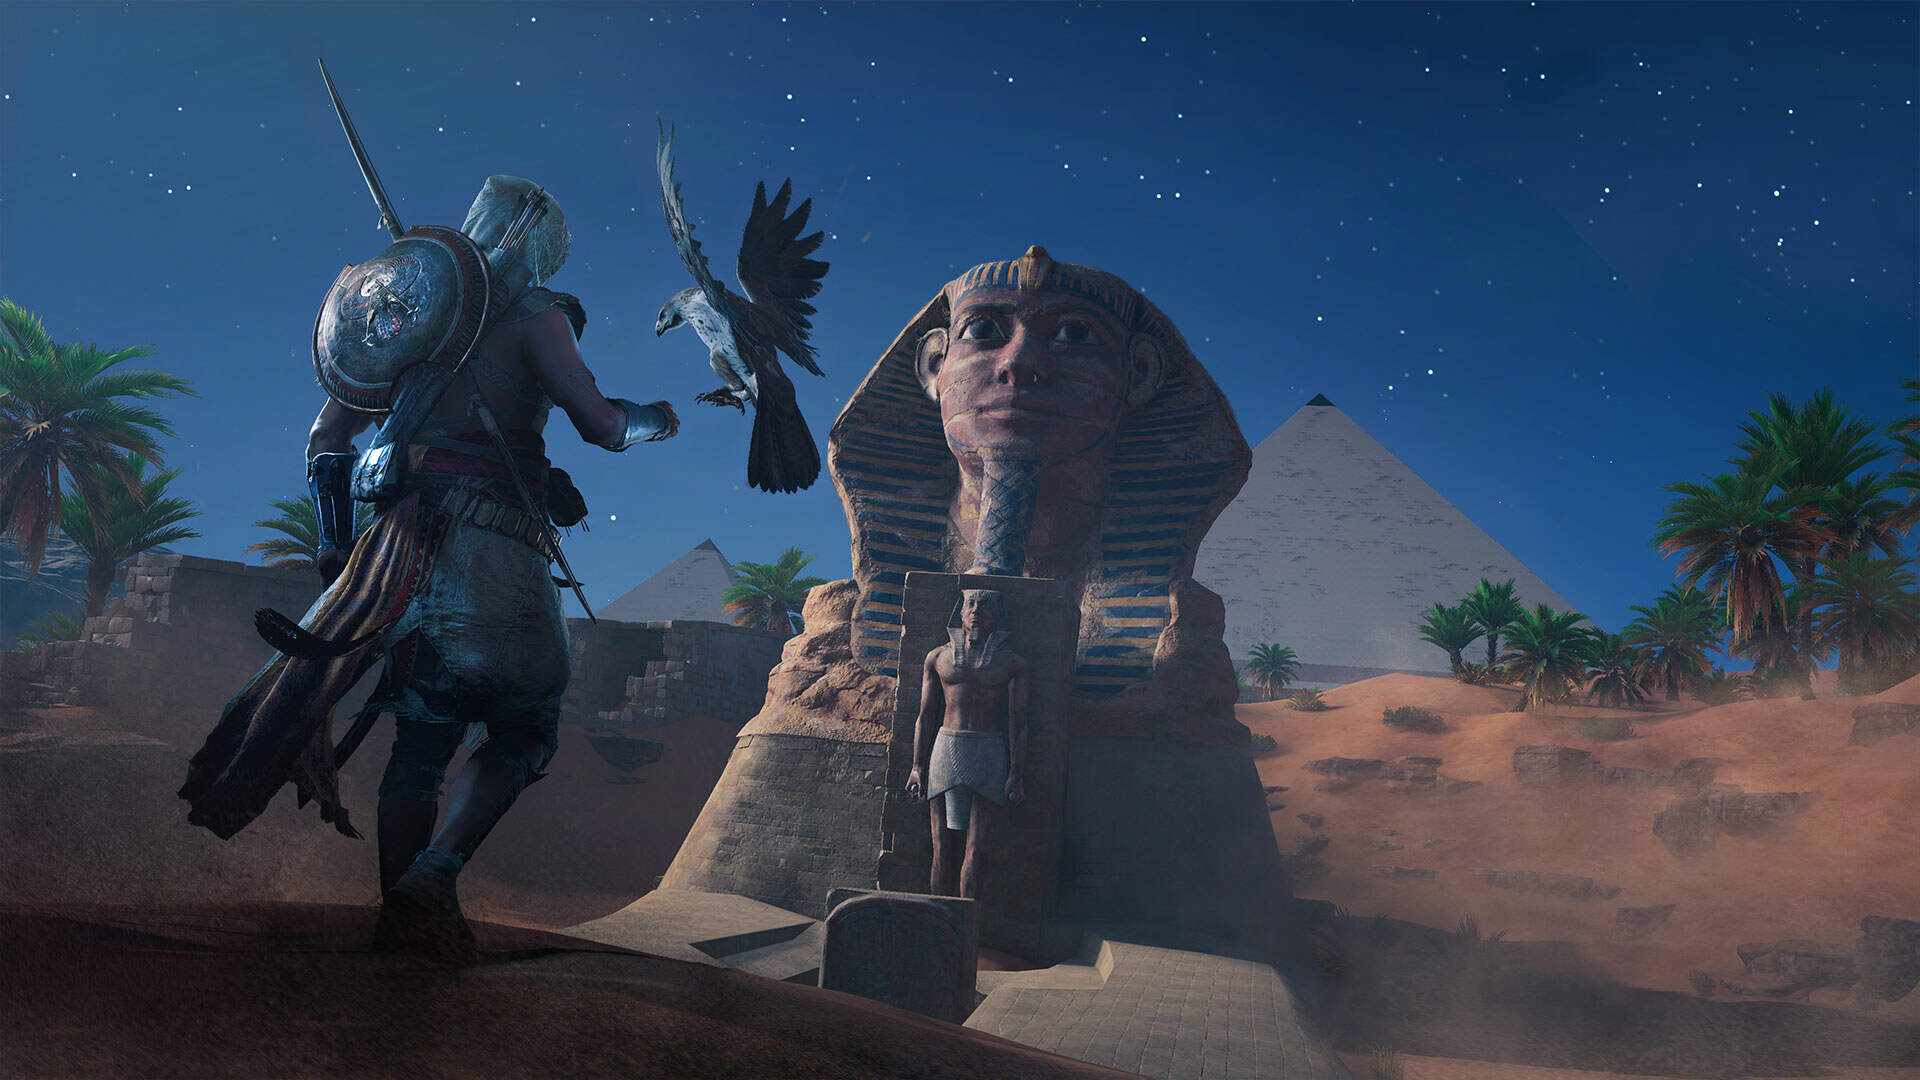 Savings on Assassin's Creed Origins and Cuphead in Amazon's Digital Day